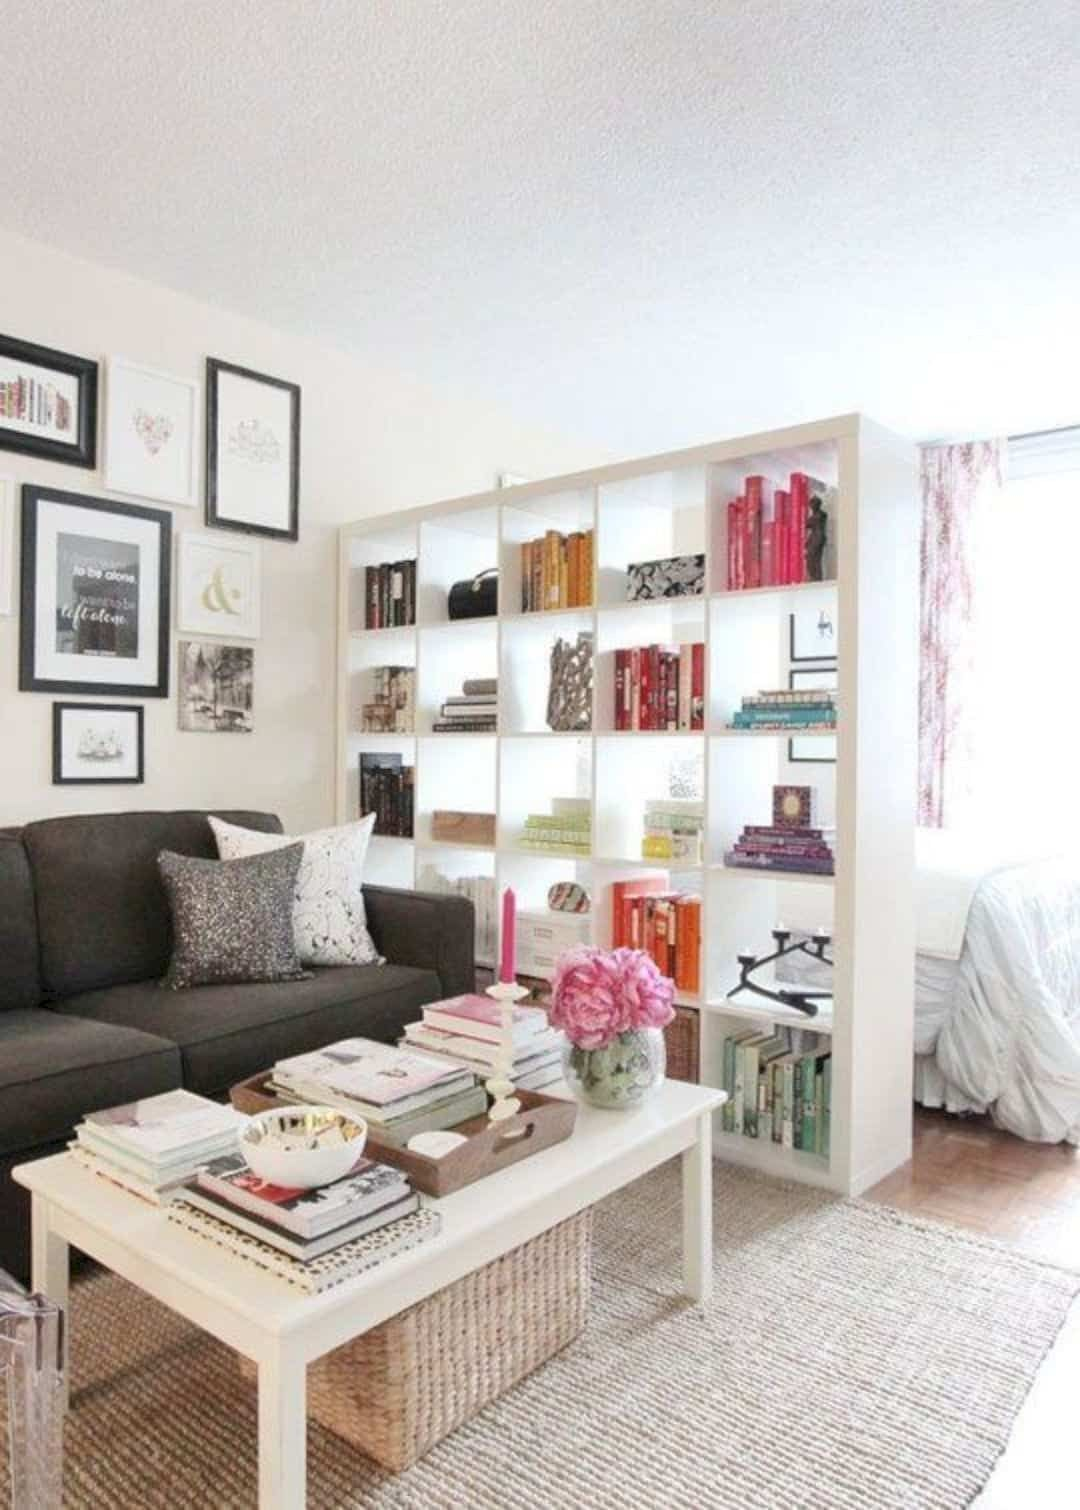 15 Furniture Ideas To Enhance The Interior Of Your Studio Apartment In 2020 Small Apartment Living Room Studio Apartment Divider Small Apartment Decorating